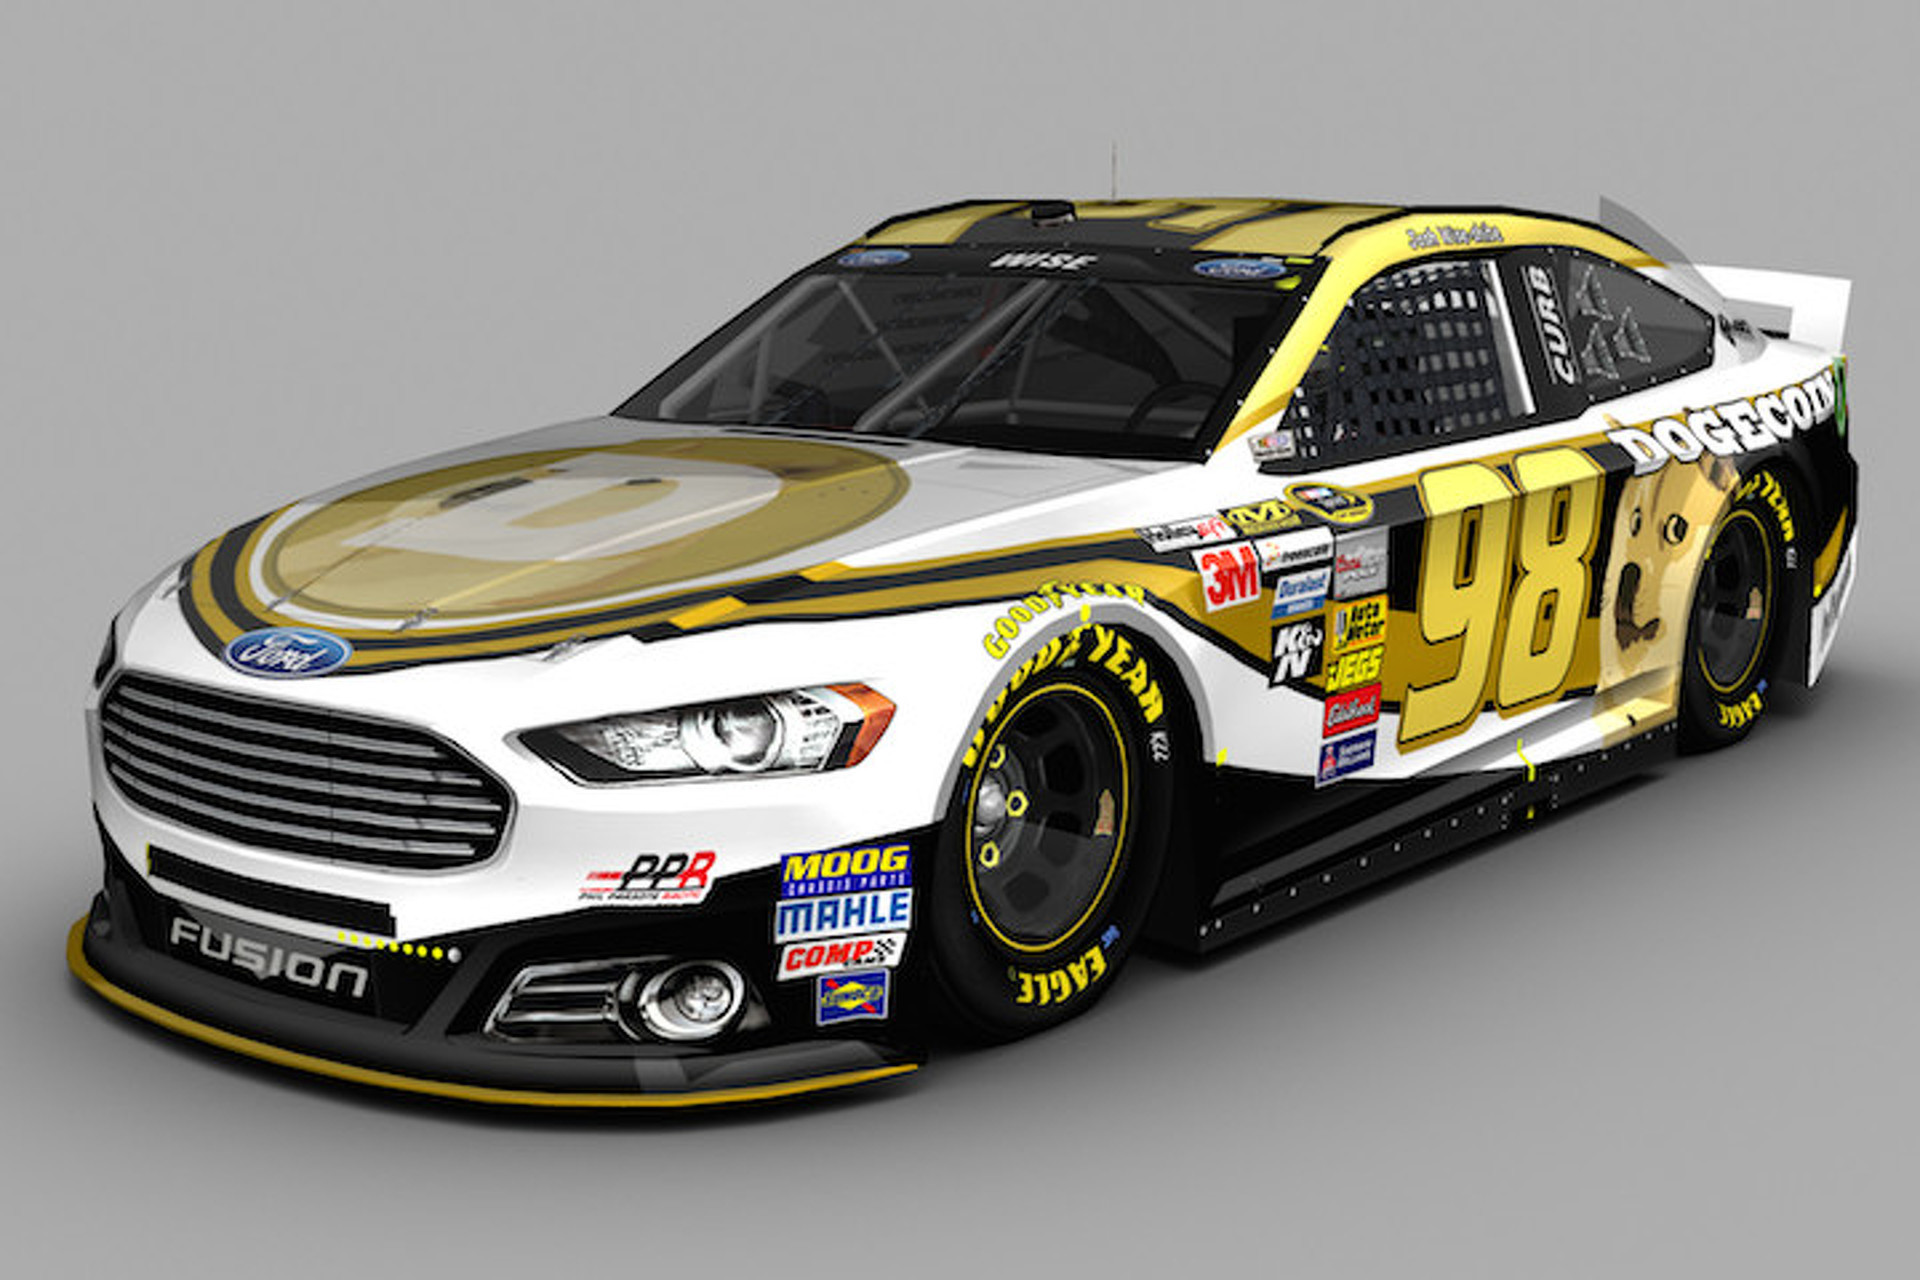 Reddit Raises $55K for Dogecoin-Sponsored NASCAR at Talladega [UPDATE]